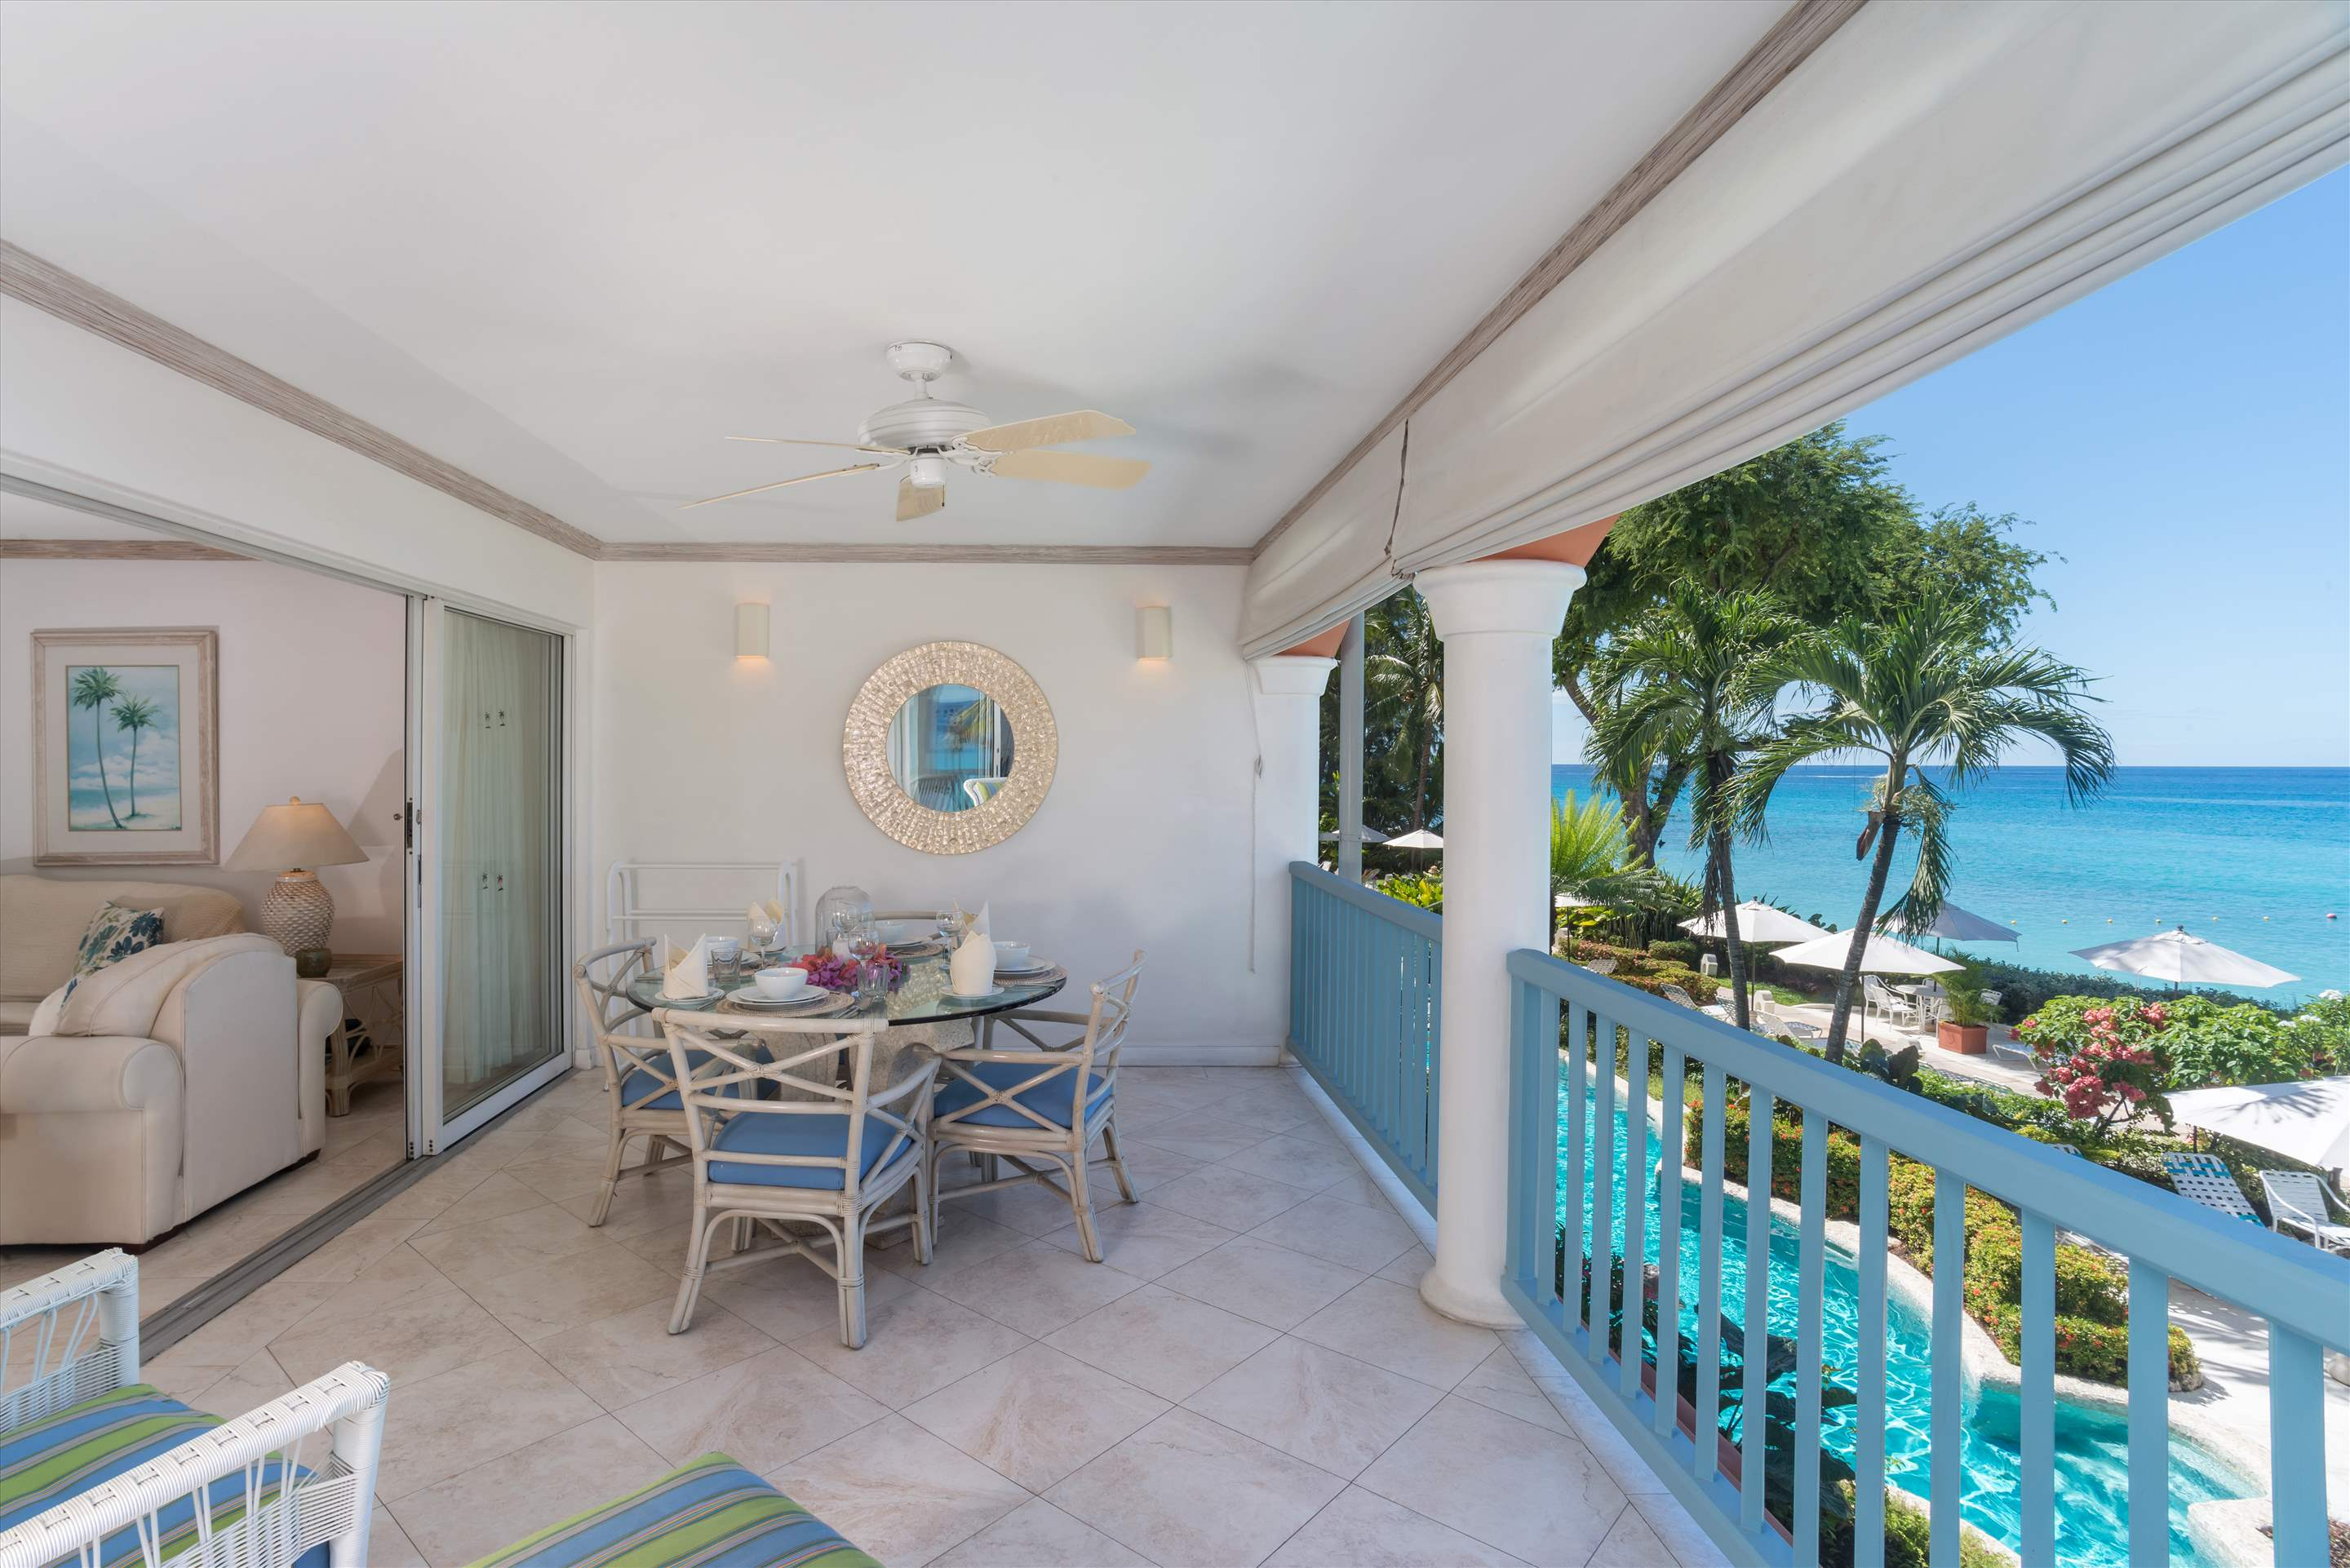 Villas on the Beach 205, 1 bedroom, 1 bedroom apartment in St. James & West Coast, Barbados Photo #4